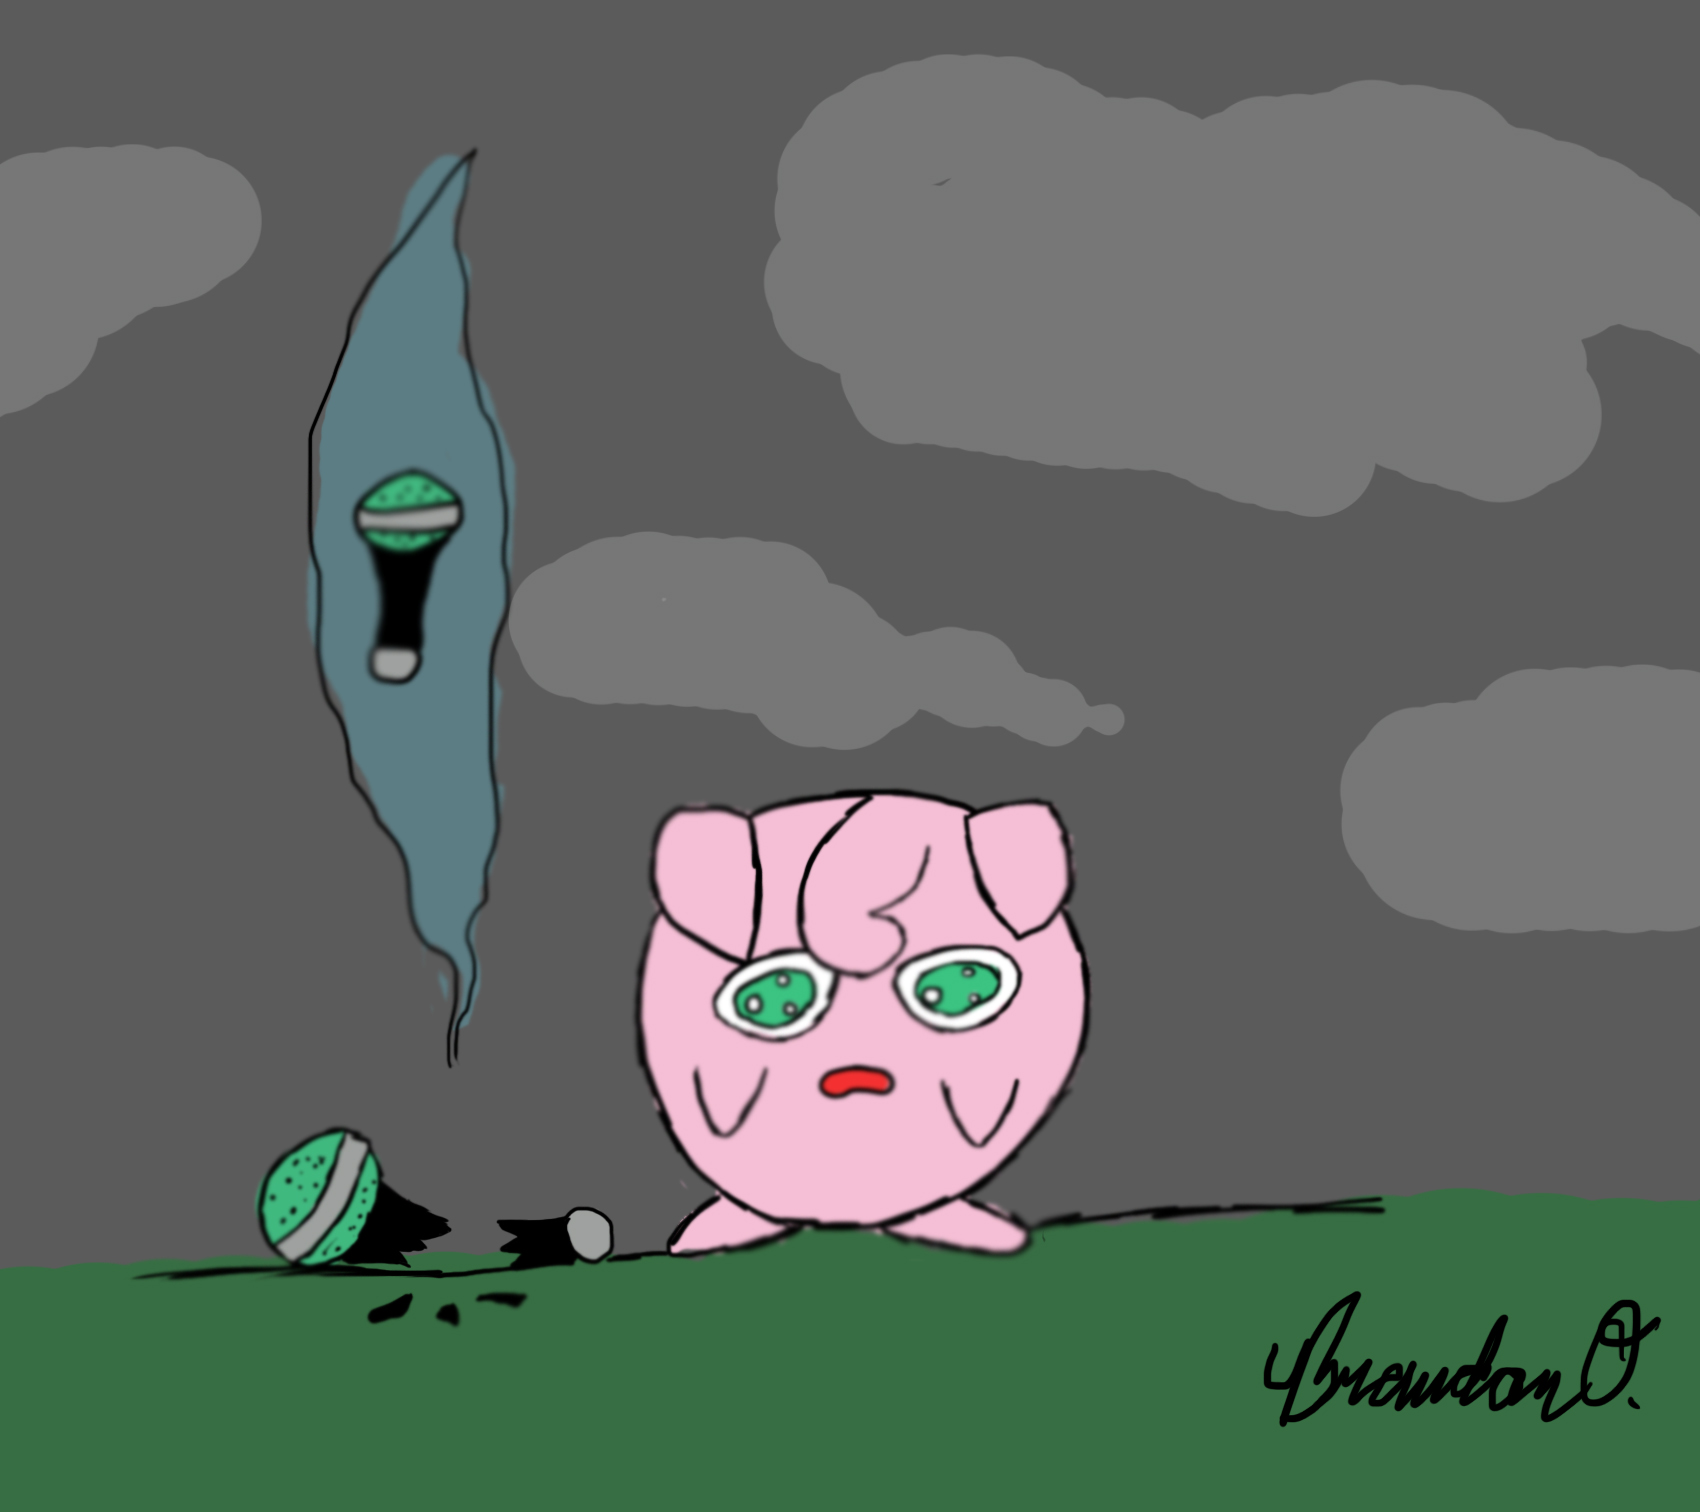 Sad Jigglypuff by Brandnman on - 331.5KB